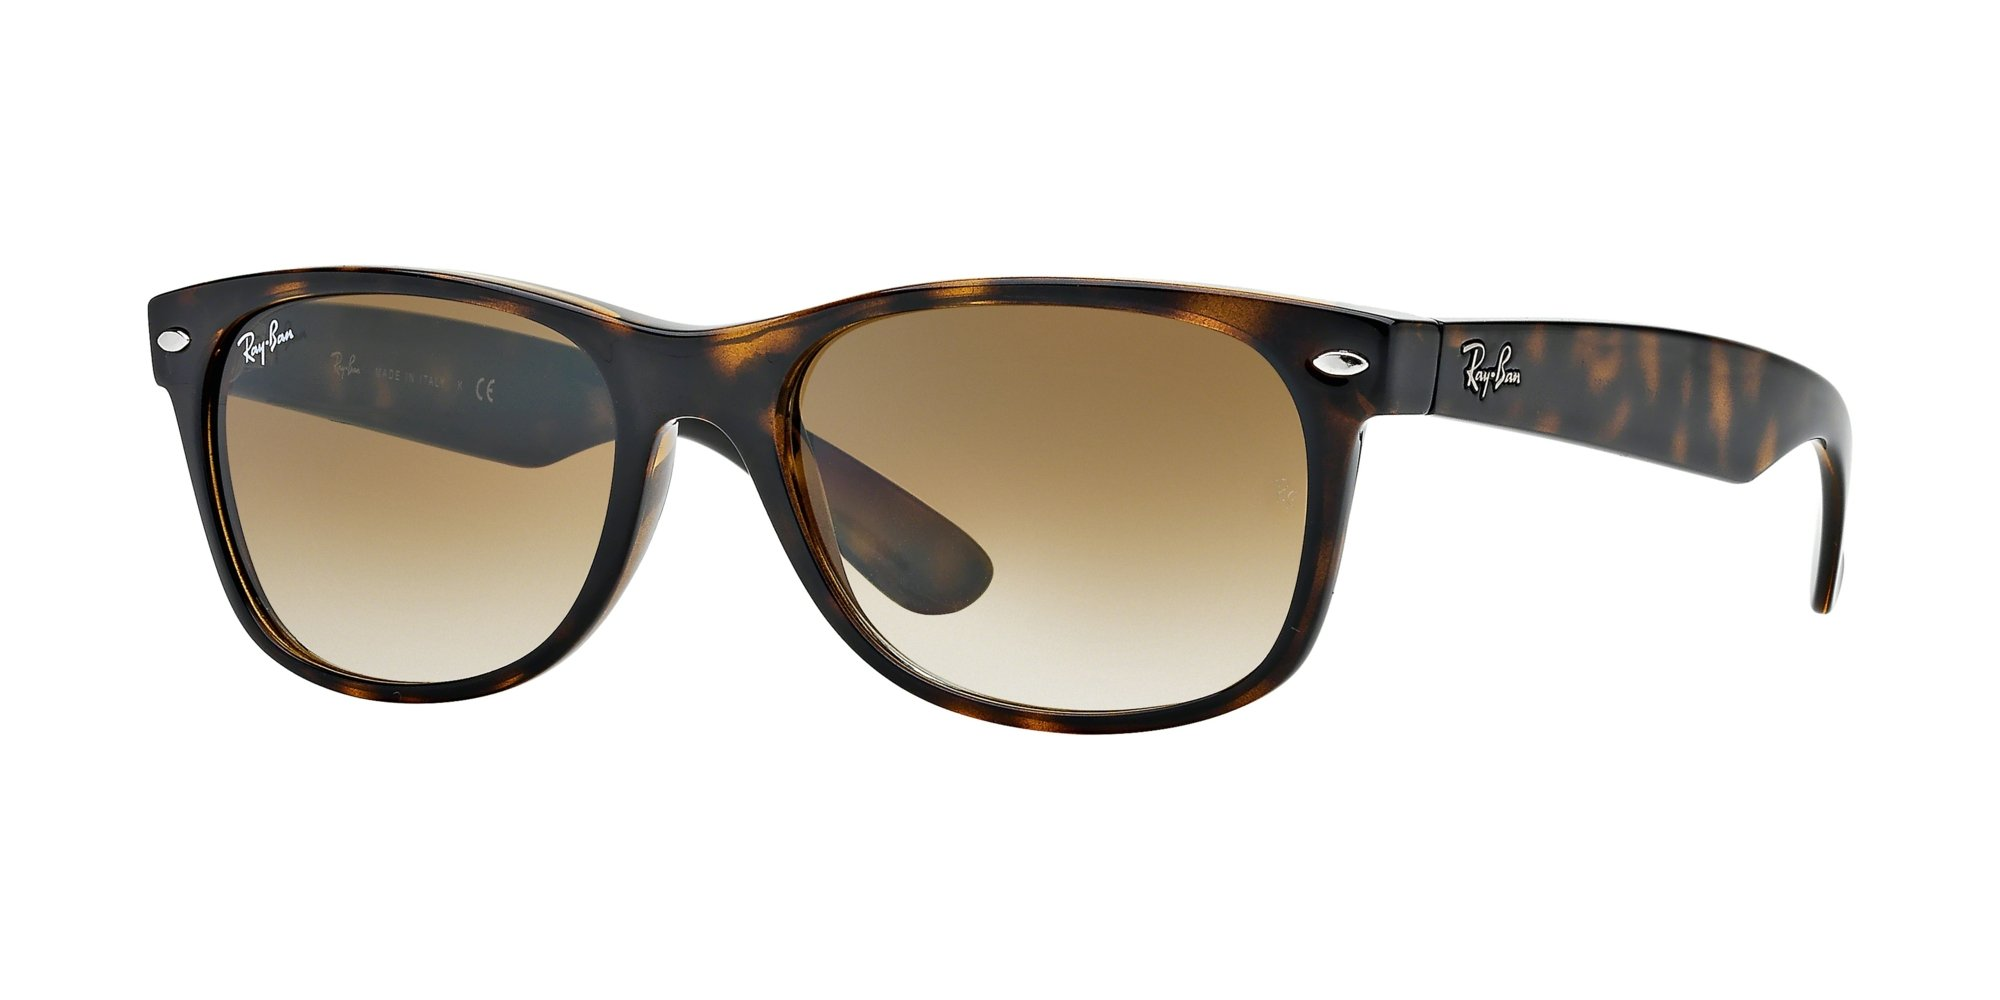 Ray Ban RB2132 710/51 55M Light Havana/Brown Gradient+FREE Complimentary Eyewear Care Kit